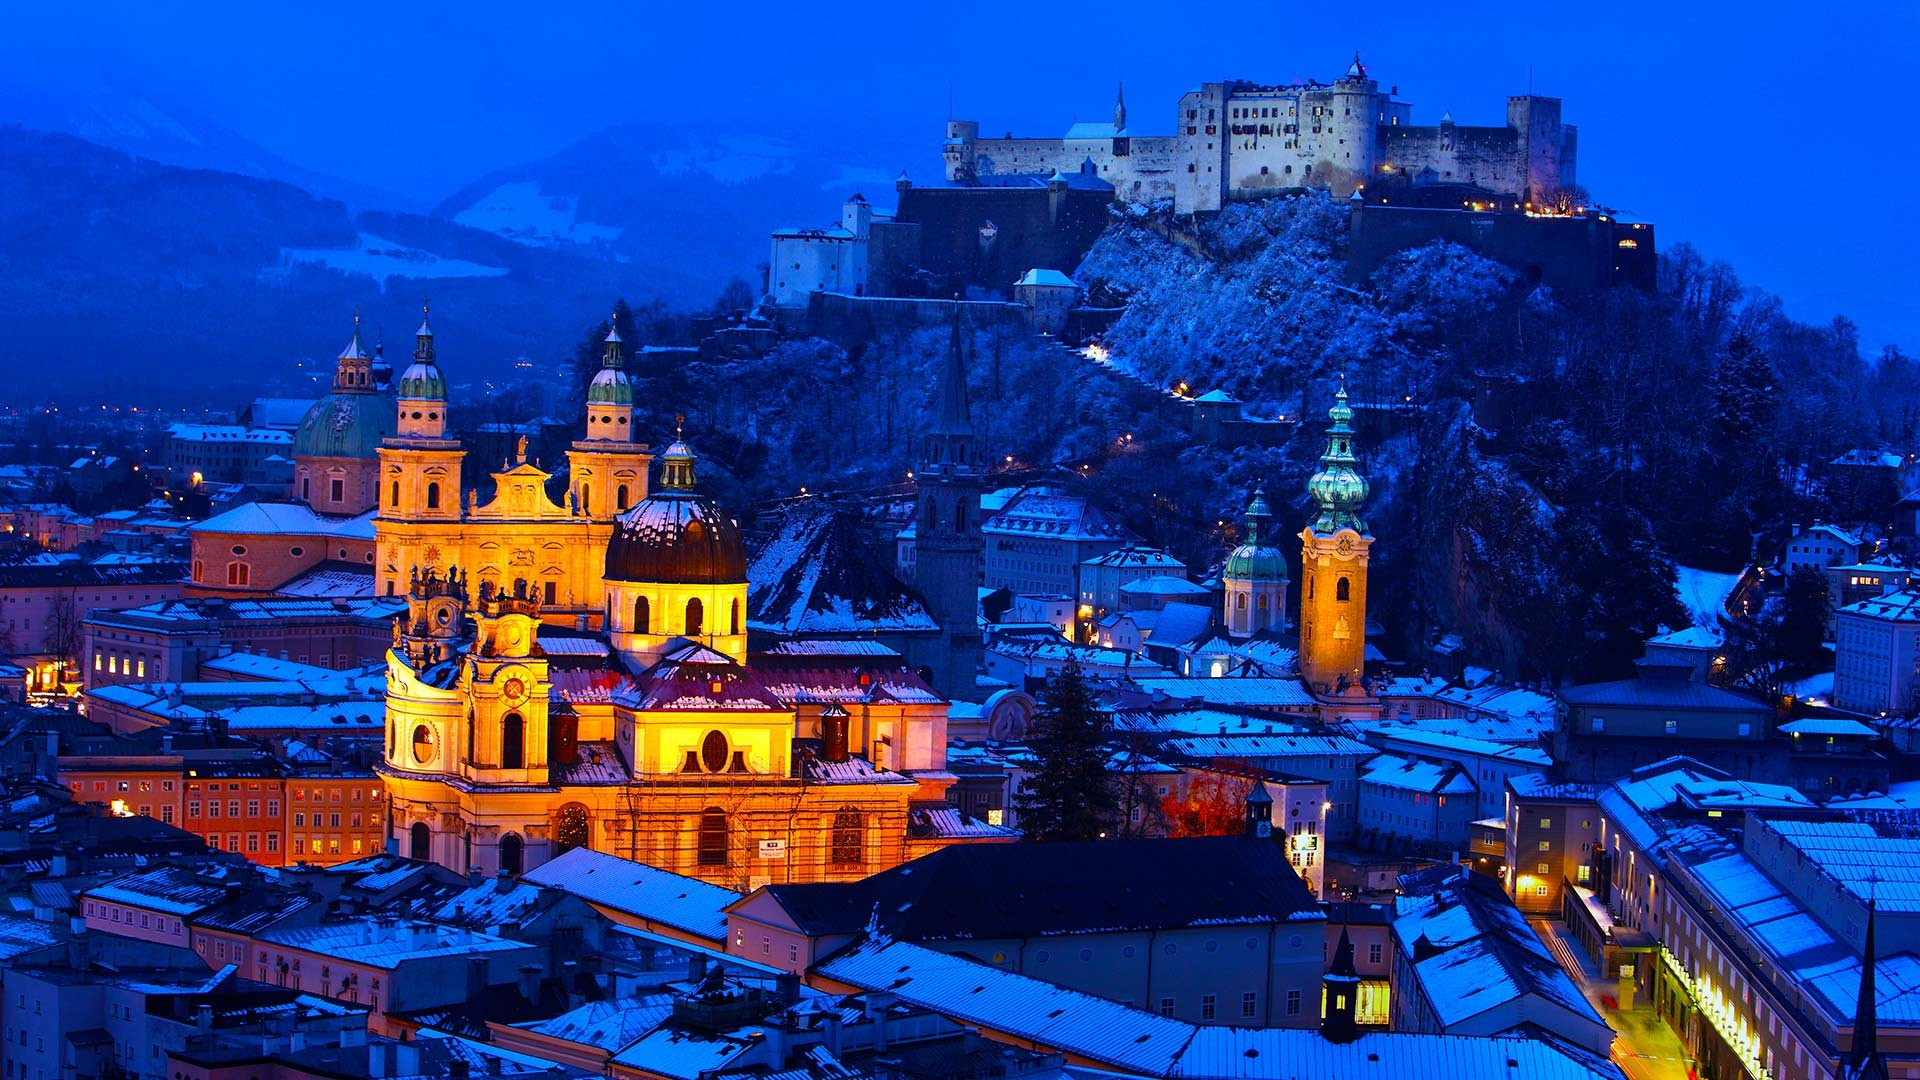 General 1920x1080 architecture building old building town house Salzburg Austria winter snow evening lights church cathedral castle hills rock rooftops ancient mountains trees forest blue